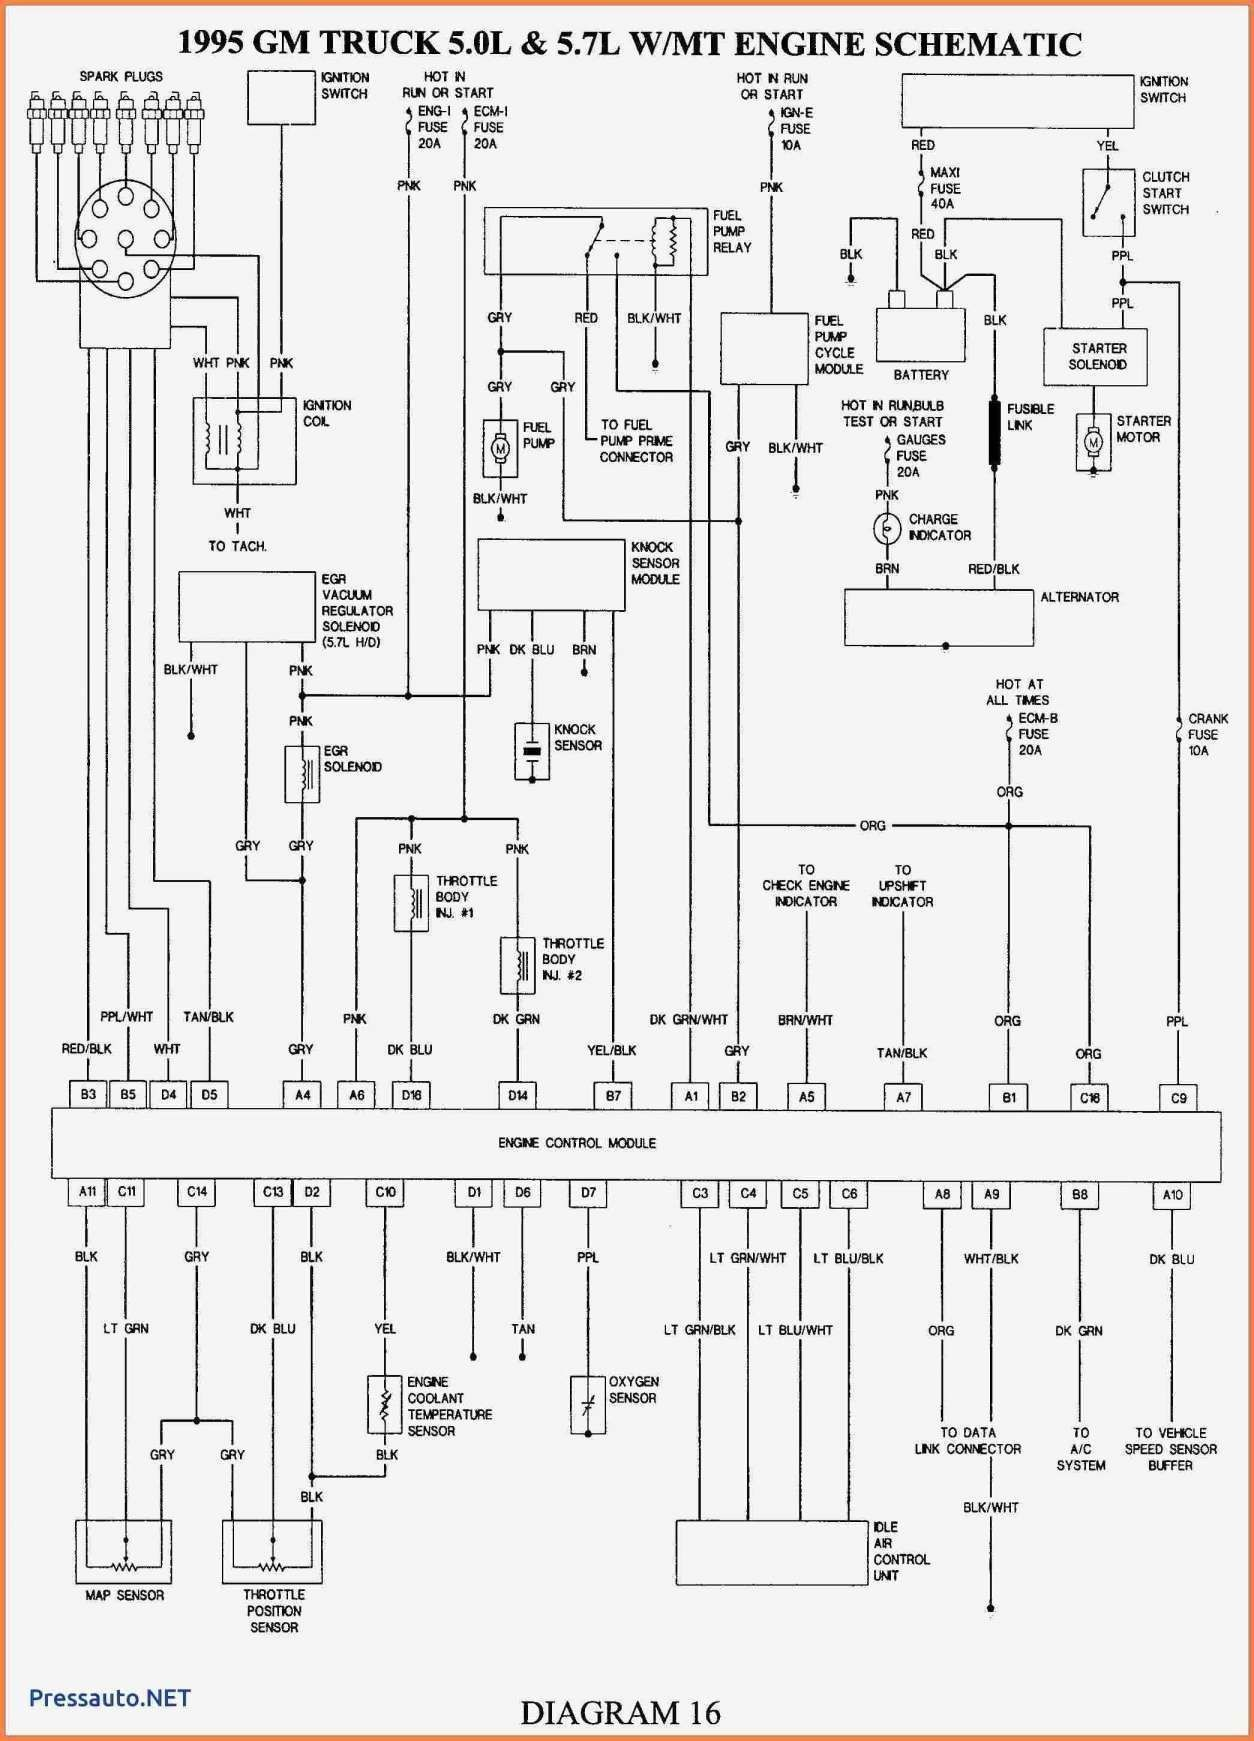 2004 Gmc 2500 6.0 Coil Wiring Chevy 2002 1500 Electrical Diagram Wiring Diagram Variant Of 2004 Gmc 2500 6.0 Coil Wiring